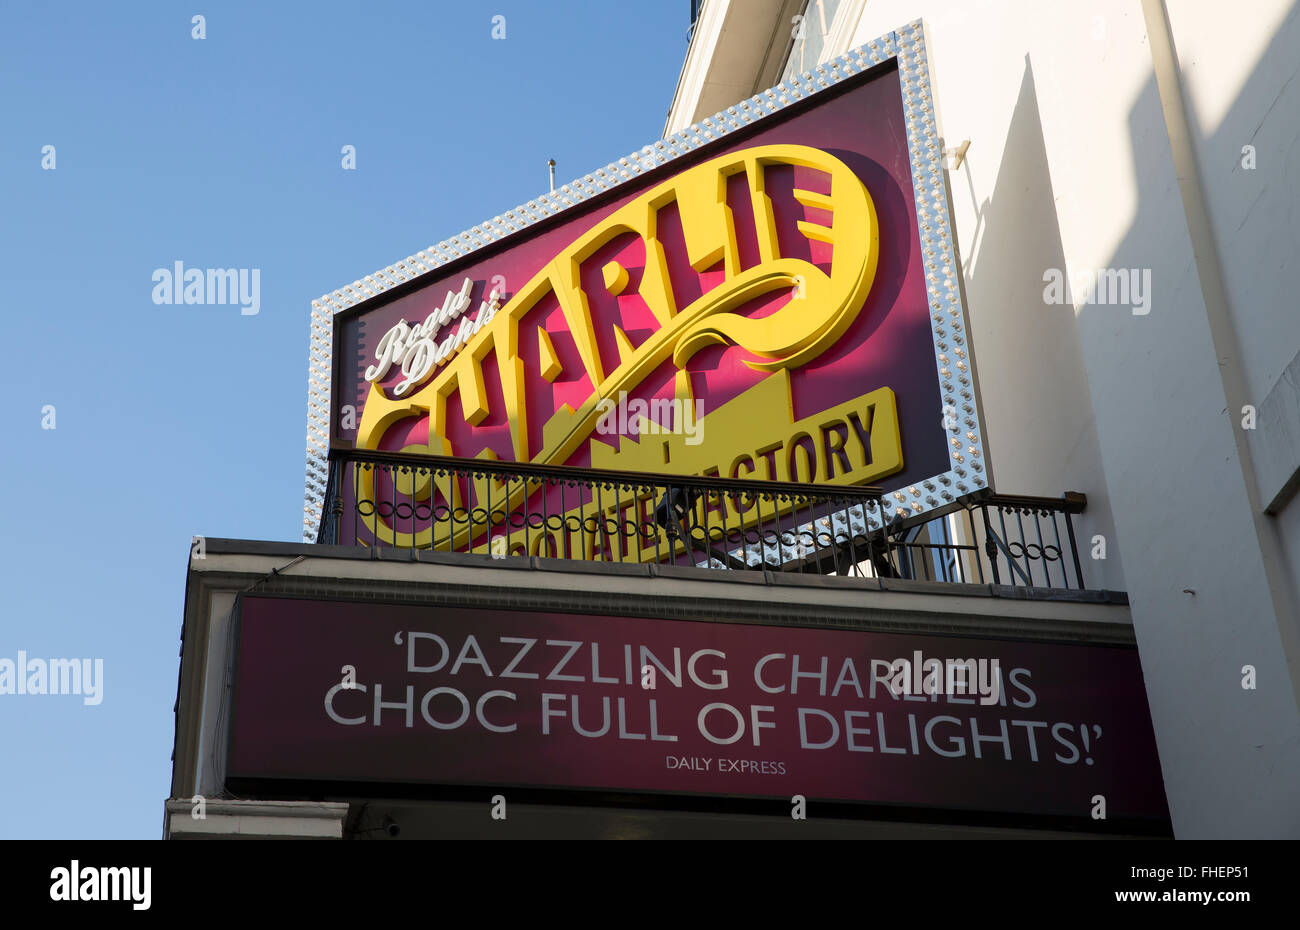 Theatre Royal Drury Lane in London where Charlie and the Chocolate factory is currently playing - Stock Image